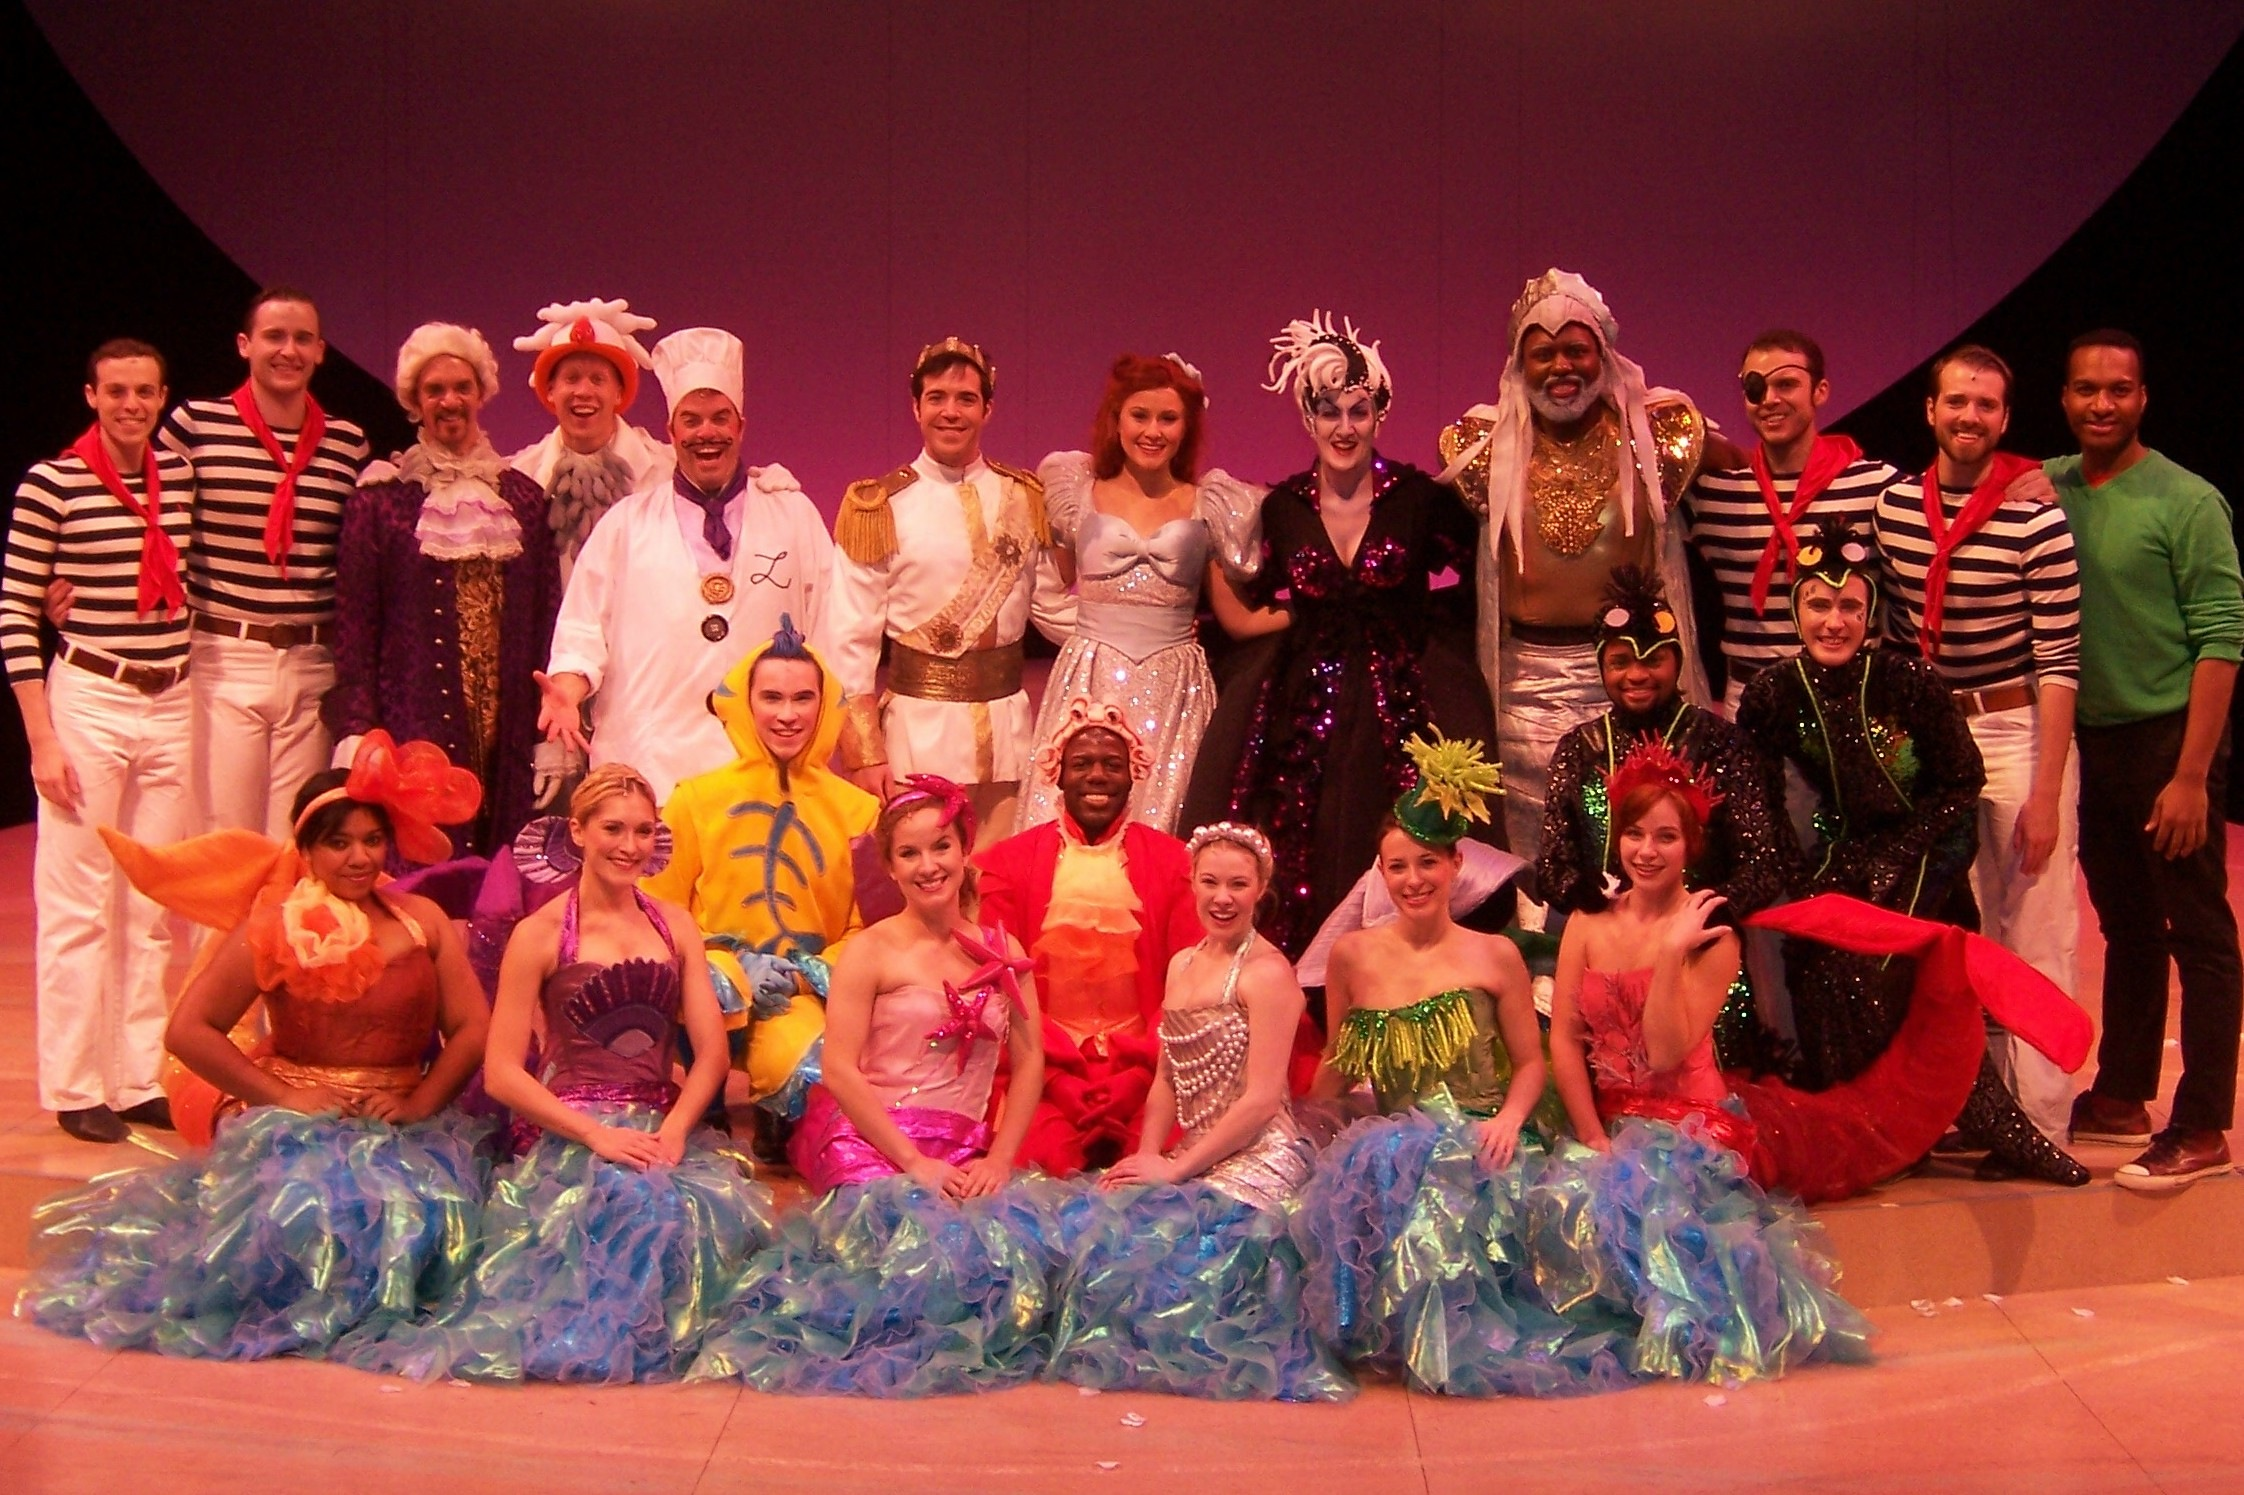 The Cast of The Little Mermaid at Olney Theatre Center. Directed by Mark Waldrop, Costumes by Pei Lee, Scenic Design by James Fouchard.